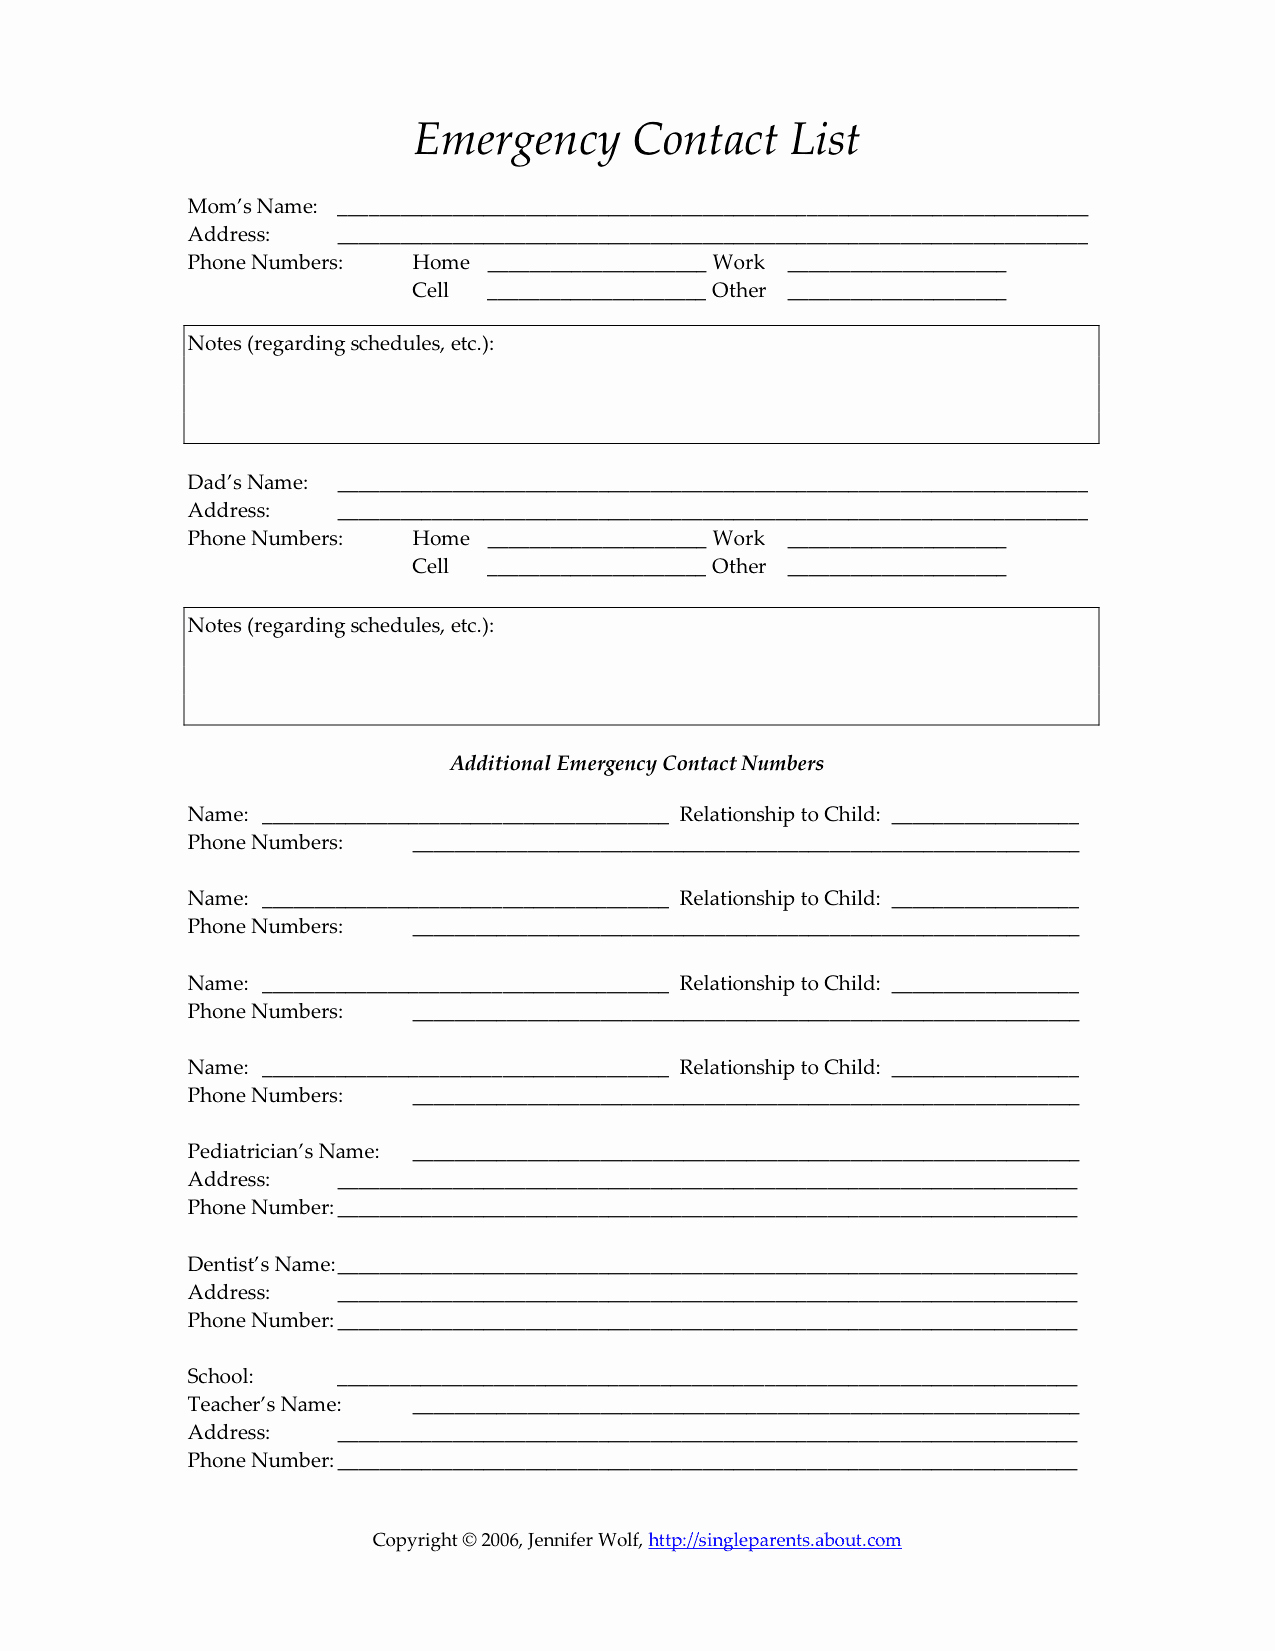 Emergency Contacts form Templates Awesome Child S Emergency Contact form